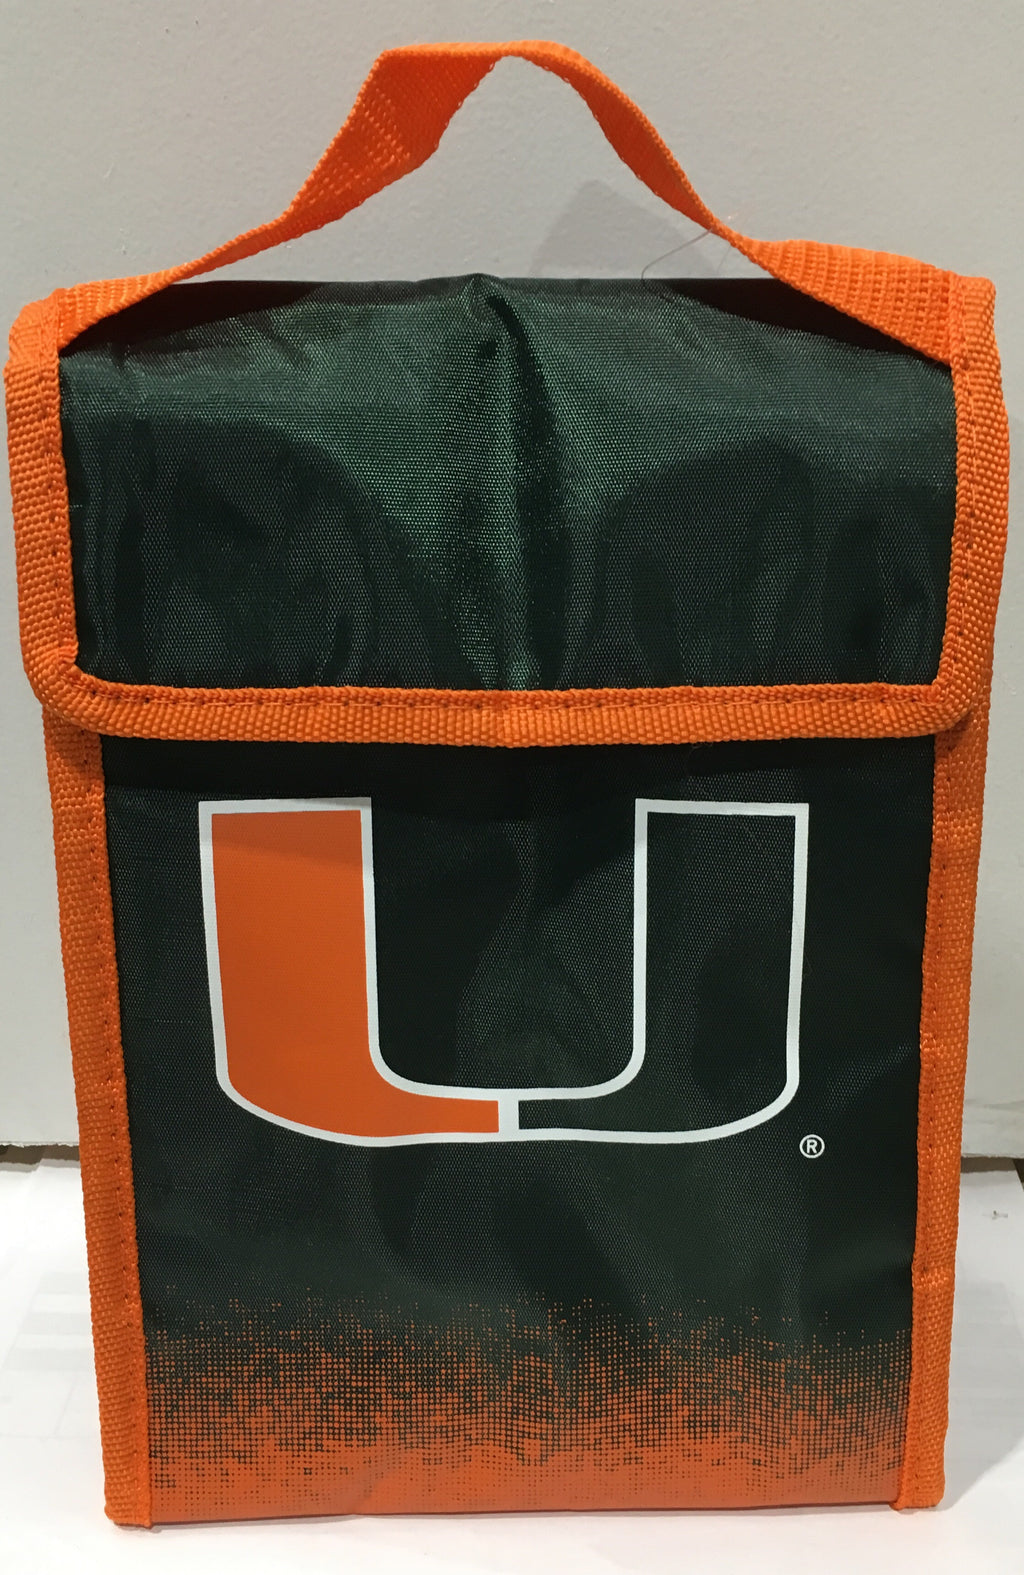 Miami Hurricanes Gradient Lunch Bag